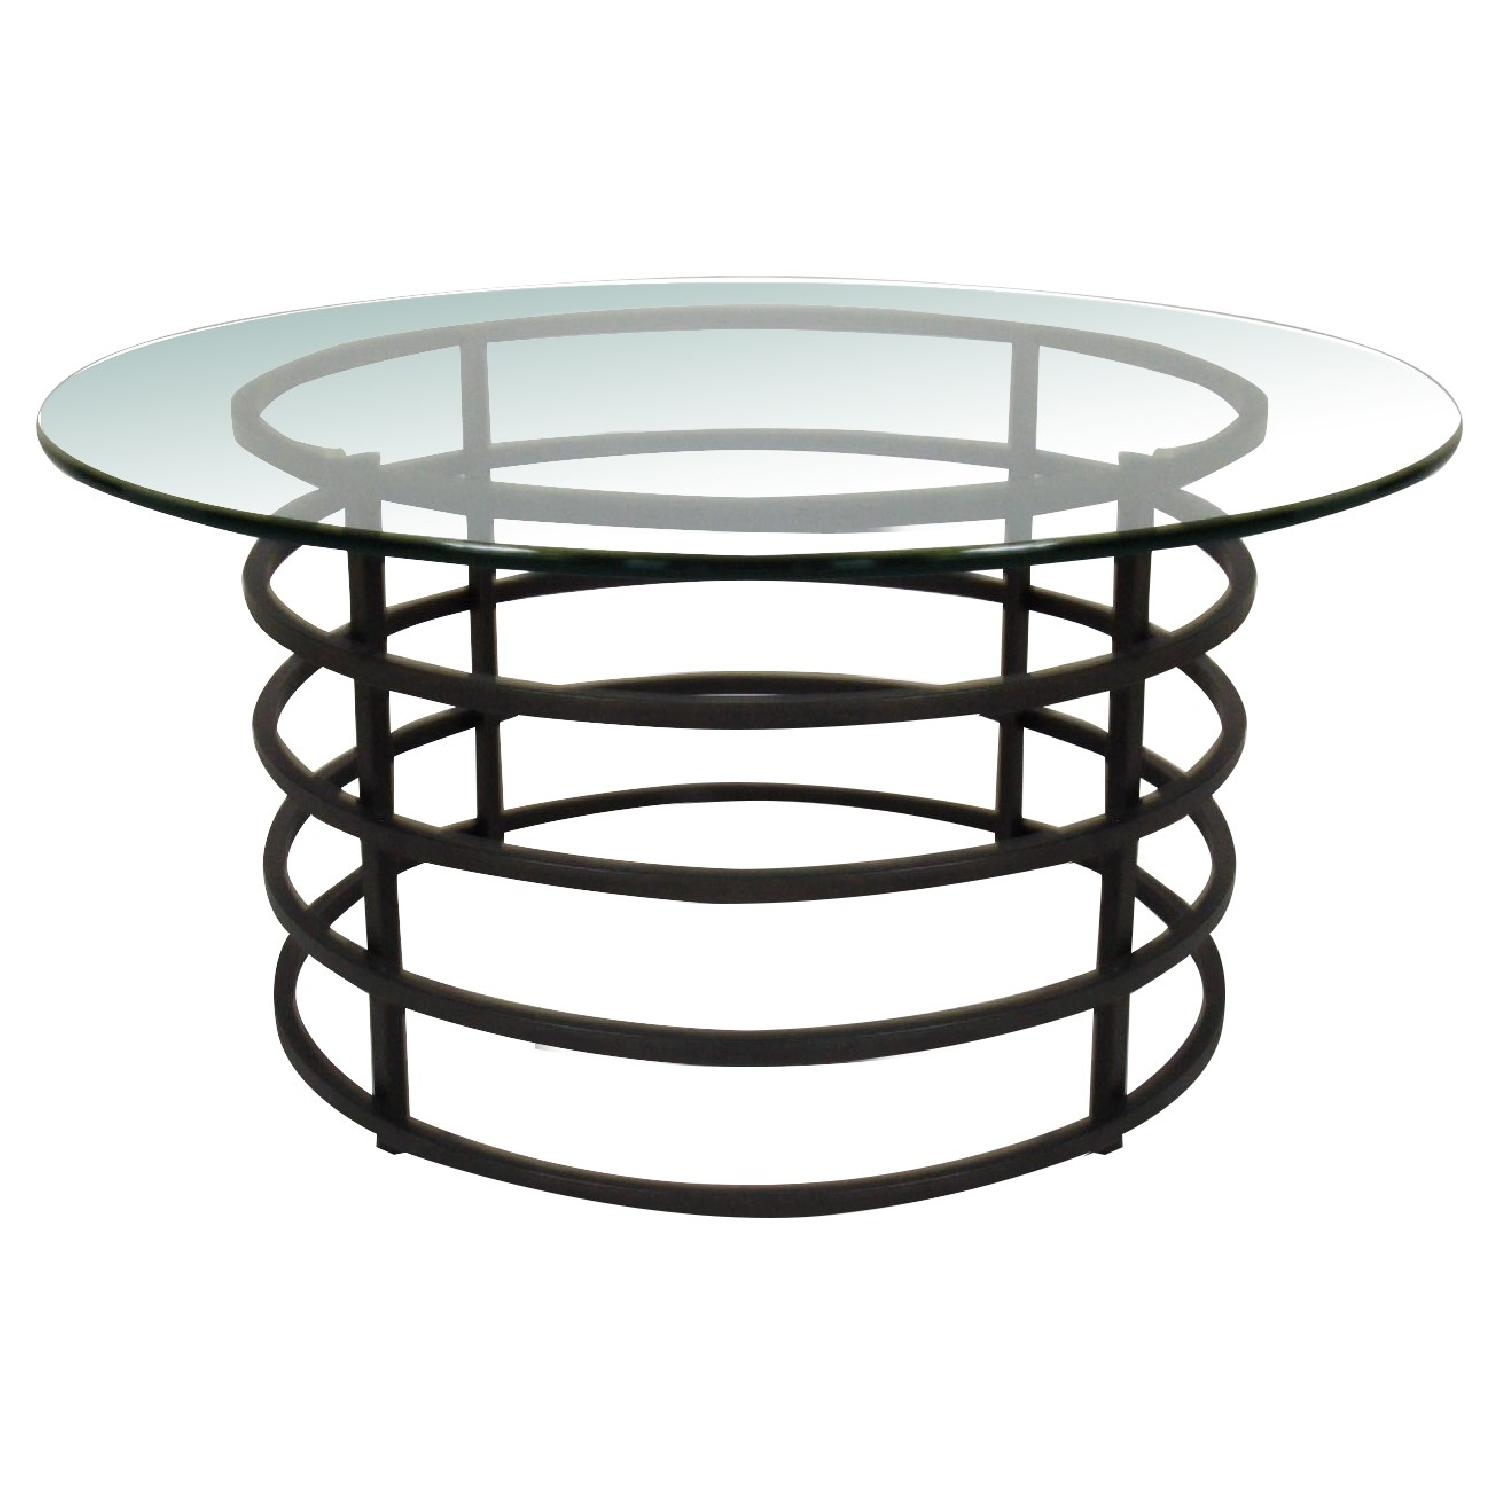 Modern Round Glass-Top Coffee Table - image-0